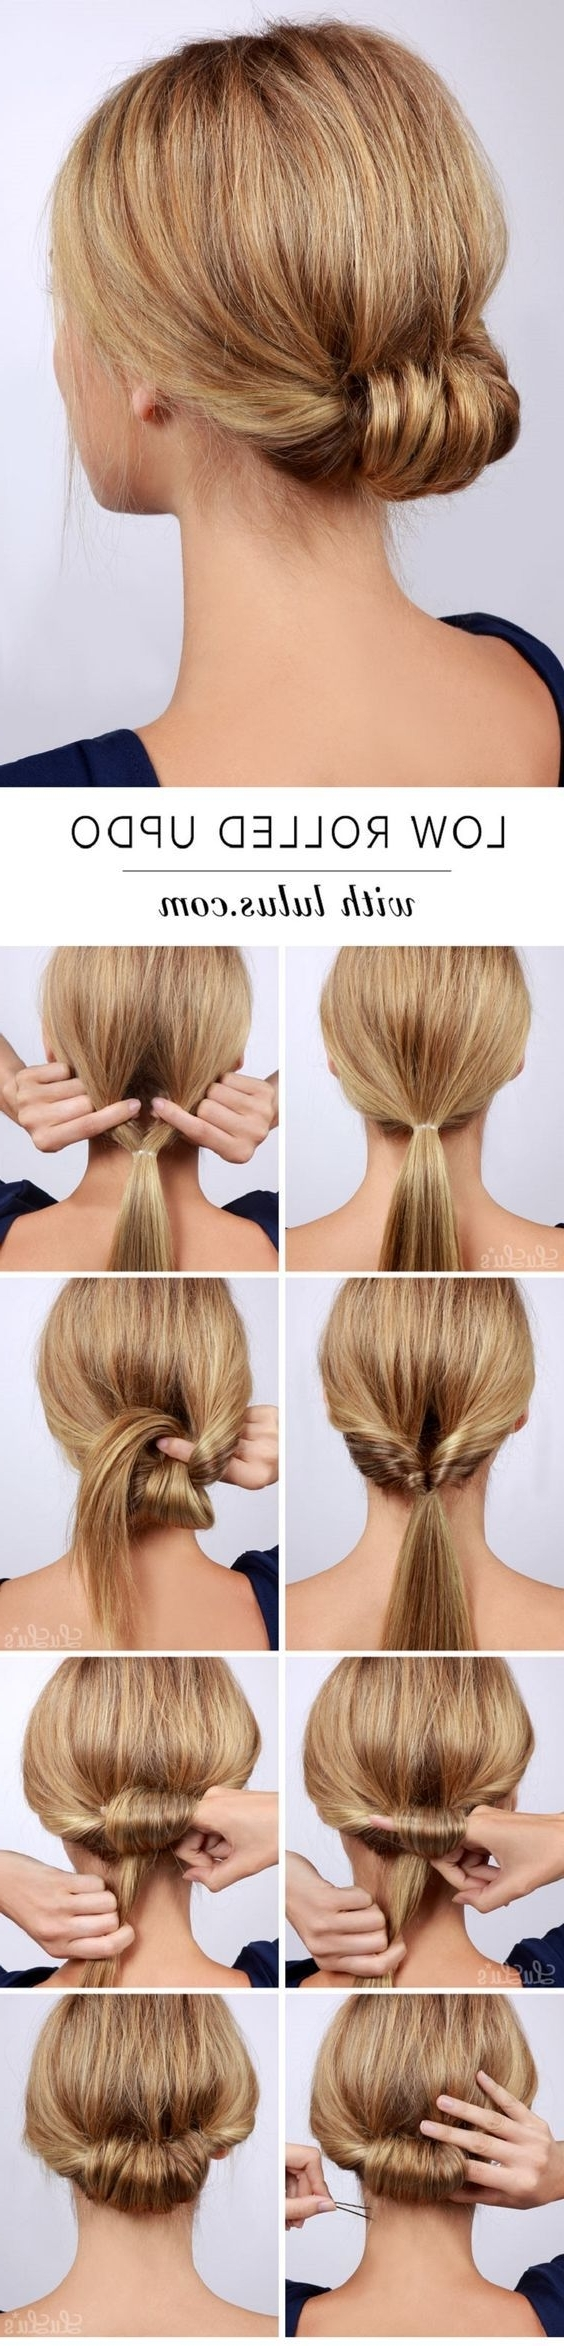 72 Best Hair Images On Pinterest | Braided Headband Tutorial, Cute Within Professional Updo Hairstyles For Long Hair (View 9 of 15)